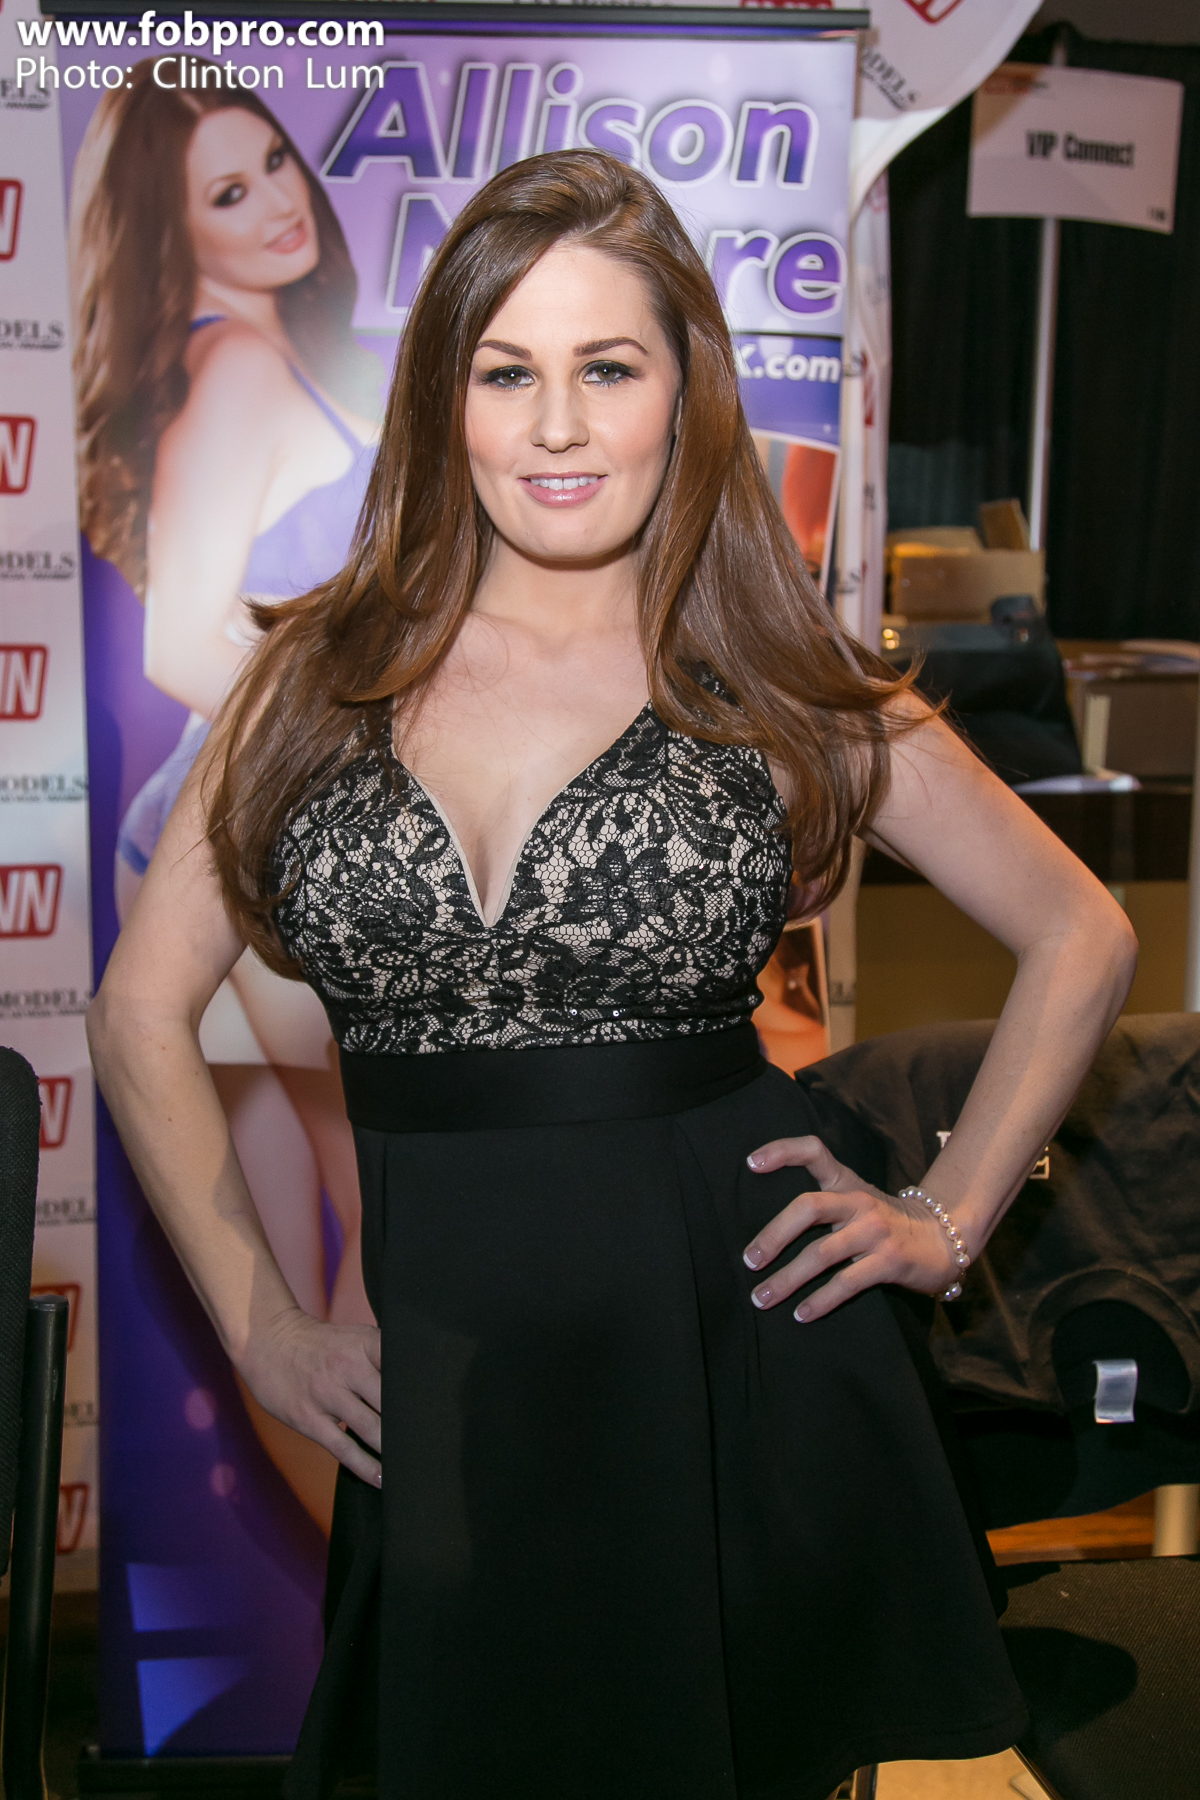 AVN Adult Entertainment Expo 2016 Day 4 (Page 6 of 22